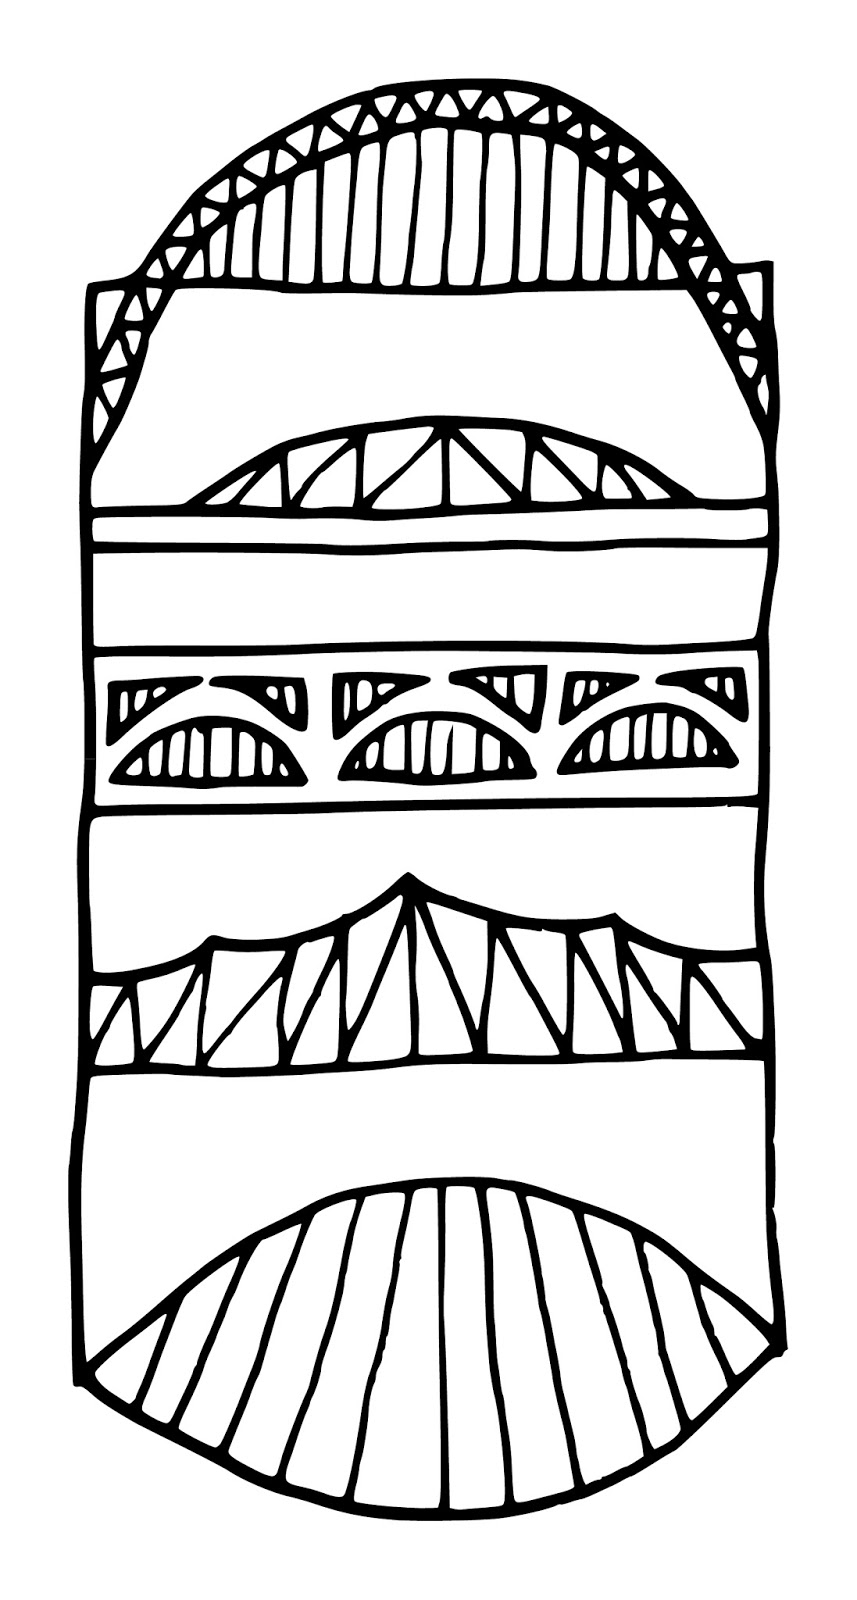 Simple Bridge Drawing At Free For Personal Use Camber Diagram Furthermore Warren Truss Further 857x1600 Laurie Woodruff Illustration Bridges